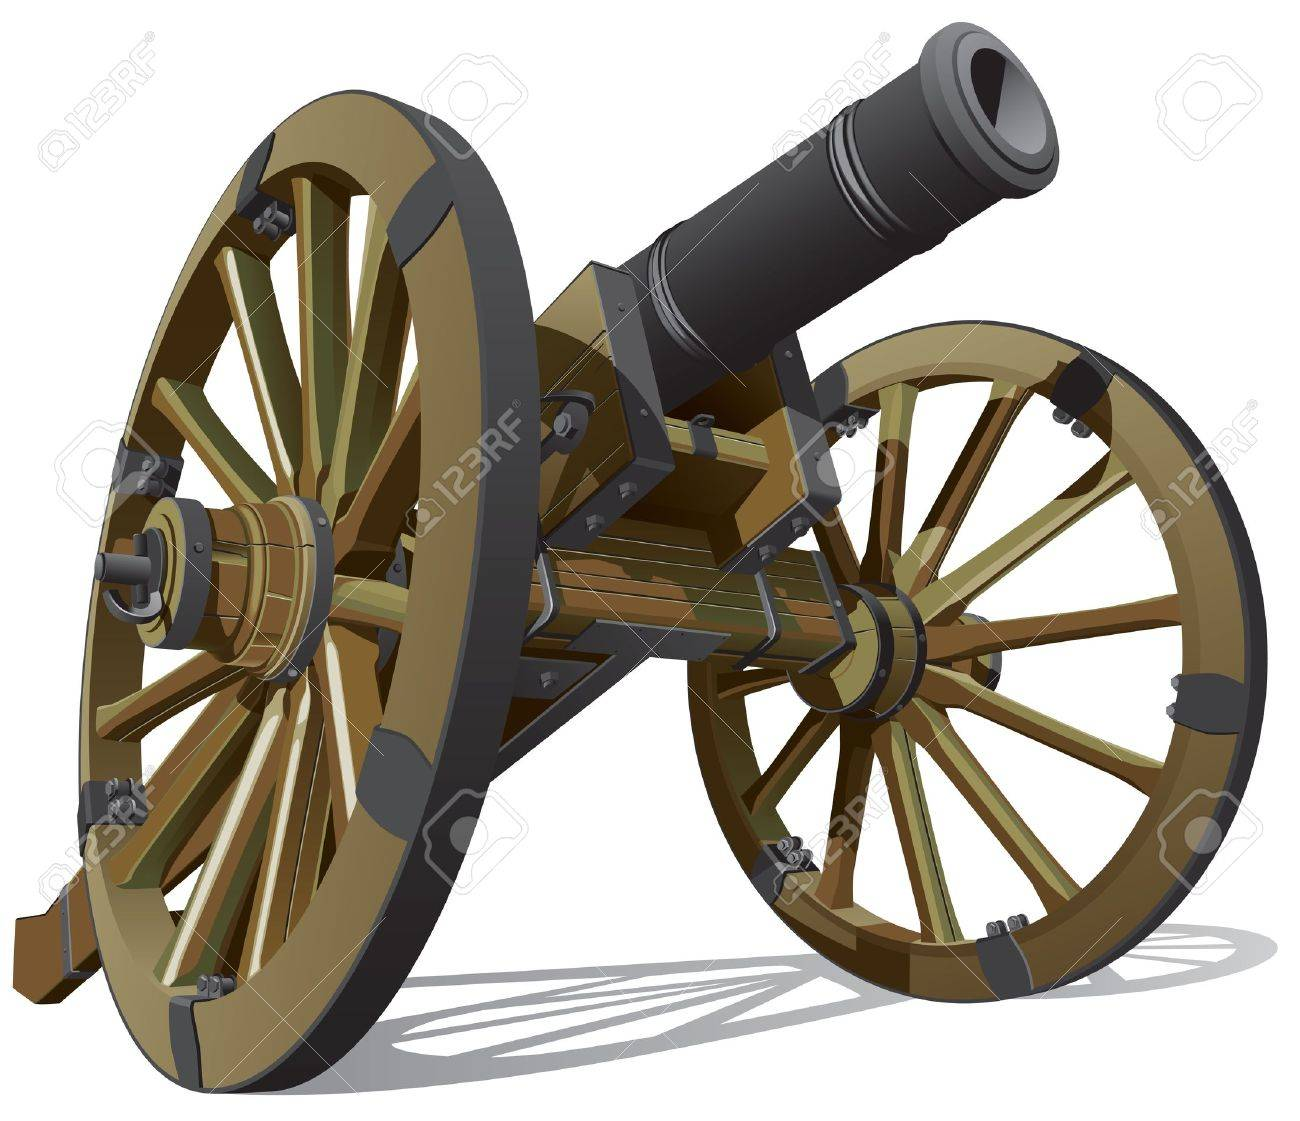 145 Civil War Cannon Stock Vector Illustration And Royalty Free.